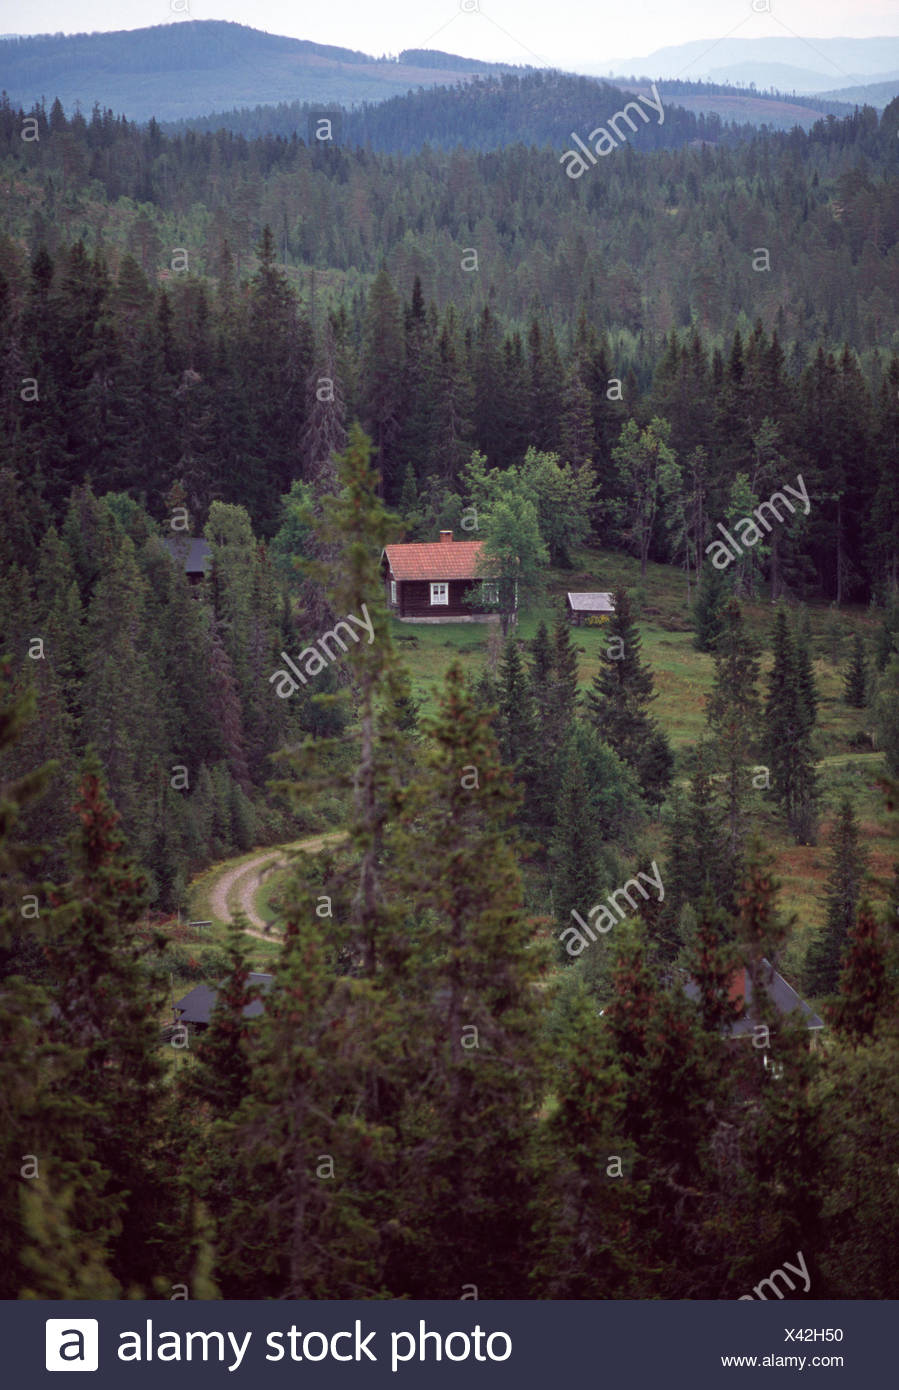 Cottage in the forest - Stock Image